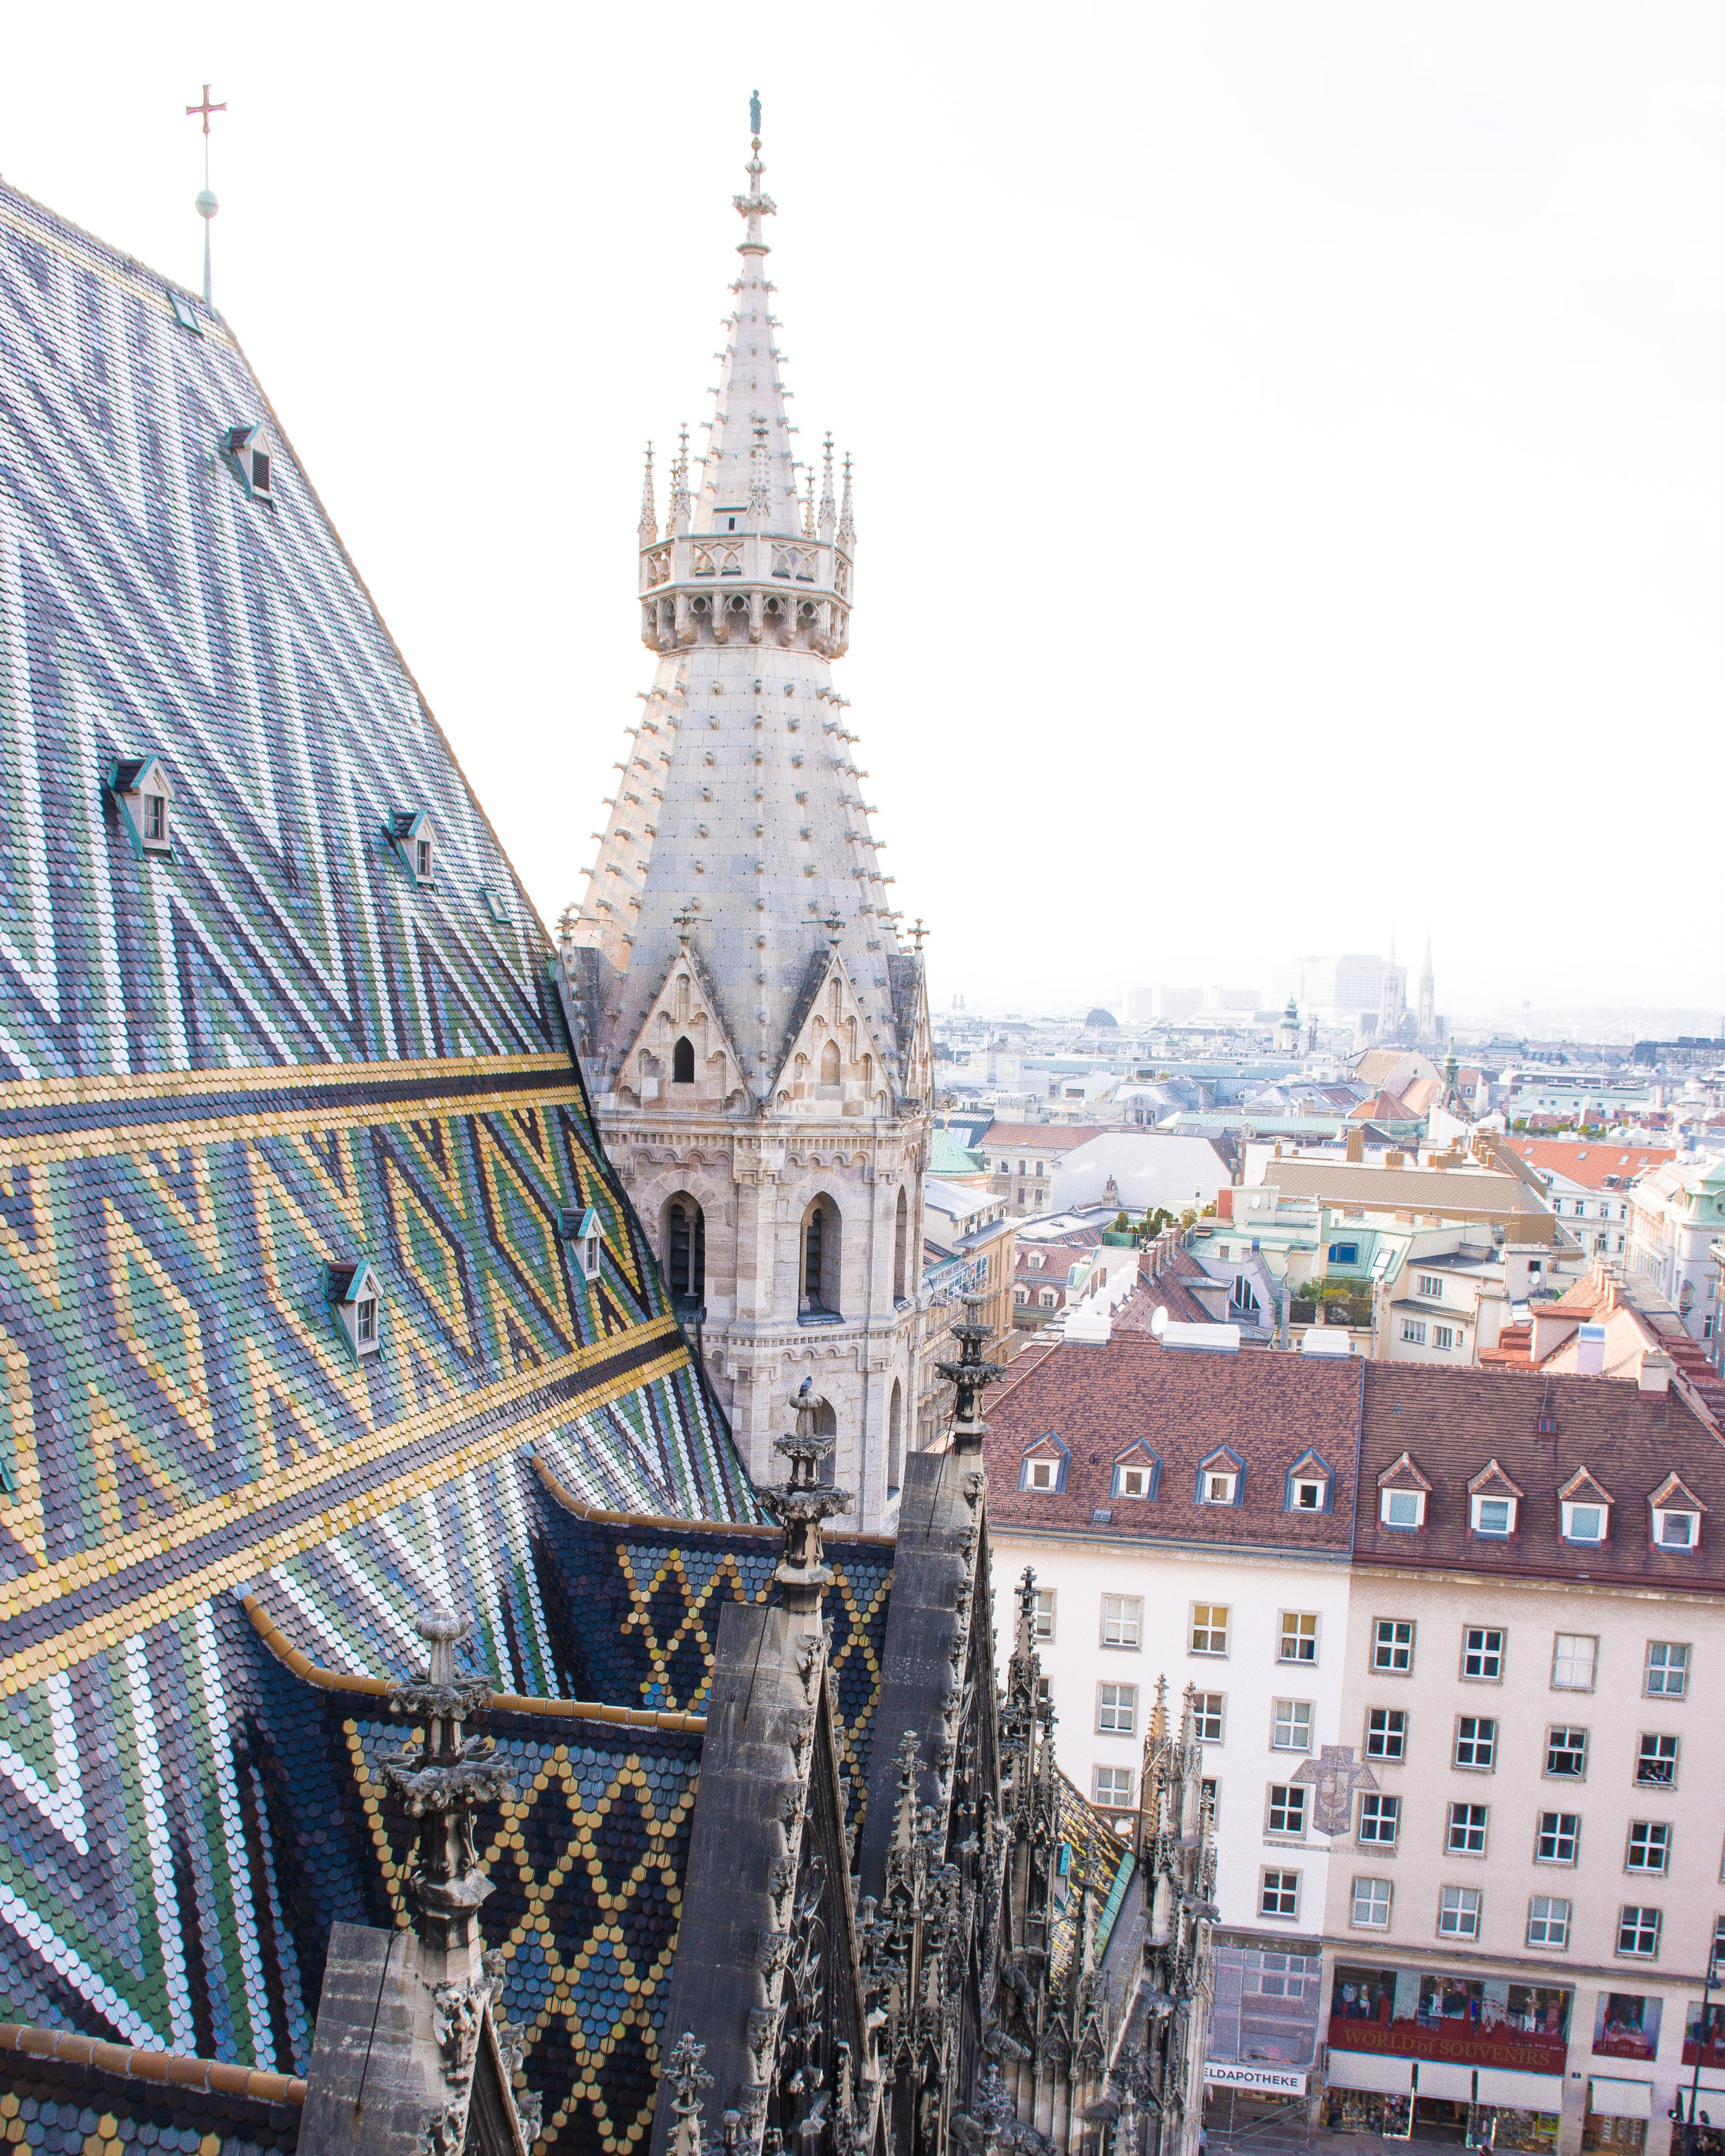 The gorgeous tiled roof of St. Stephens Cathedral